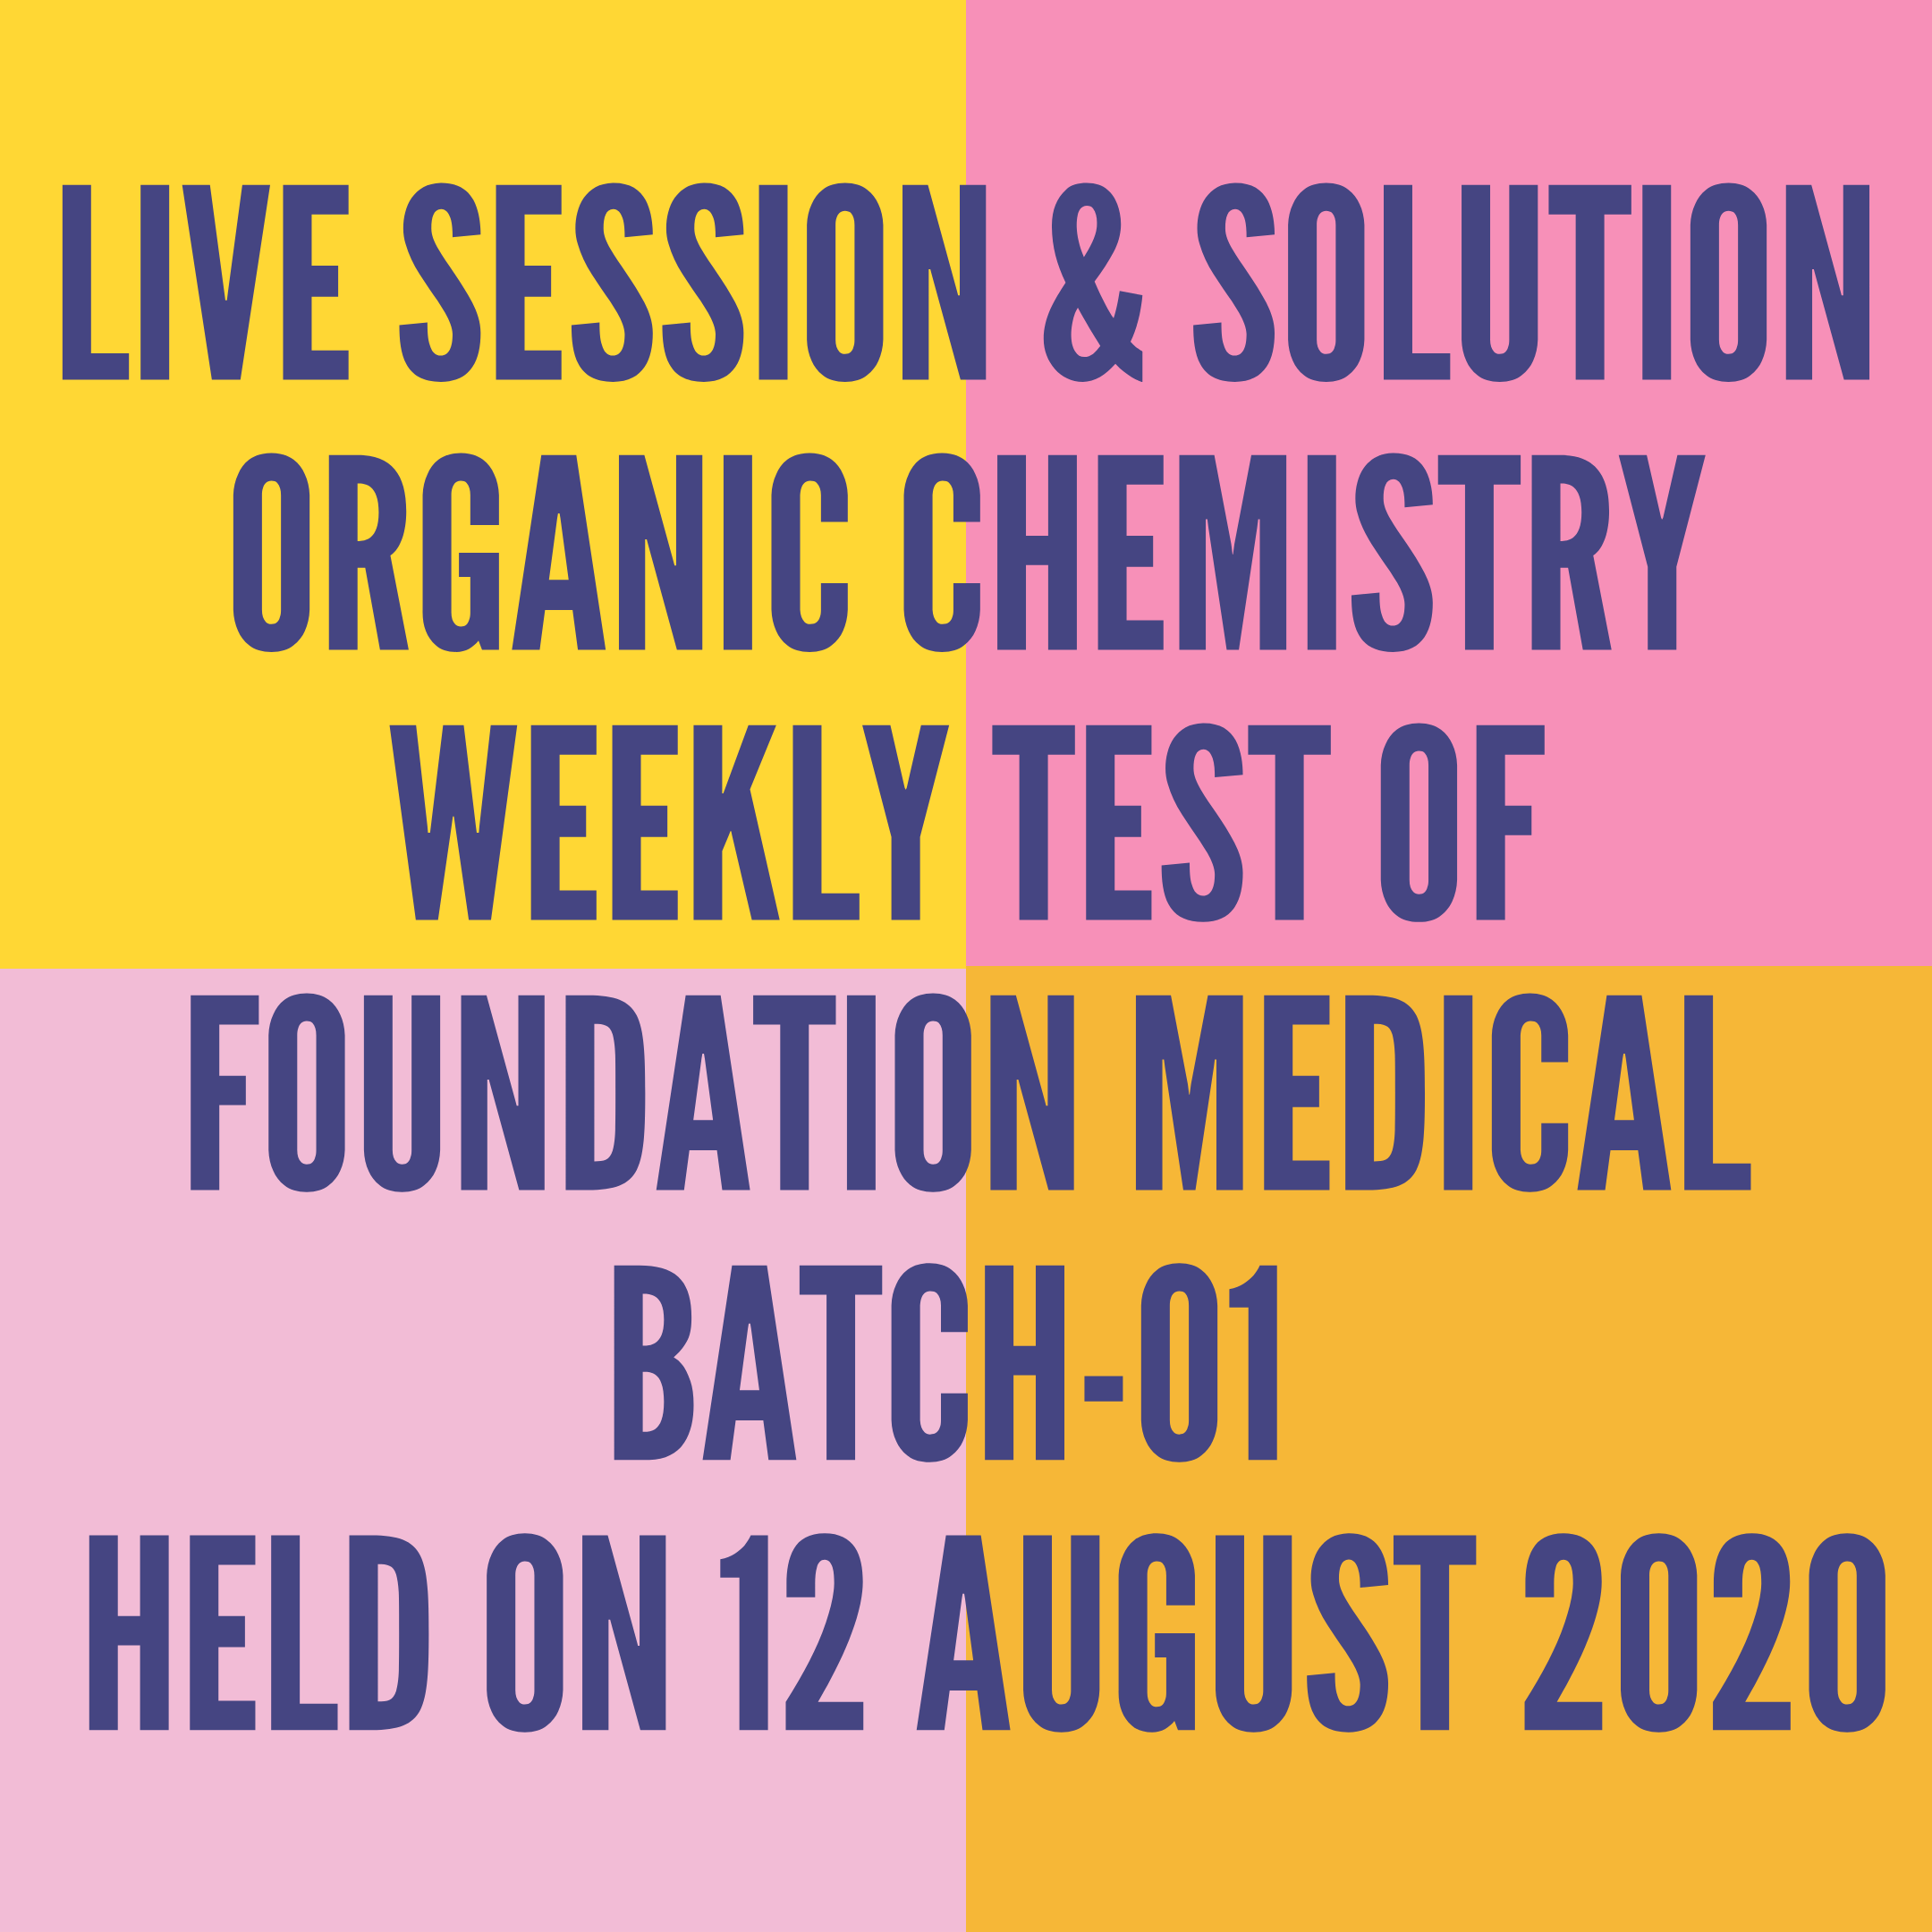 LIVE SESSION & SOLUTION ORGANIC CHEMISTRY WEEKLY TEST OF FOUNDATION MEDICAL BATCH-01  HELD ON 12 AUGUST 2020